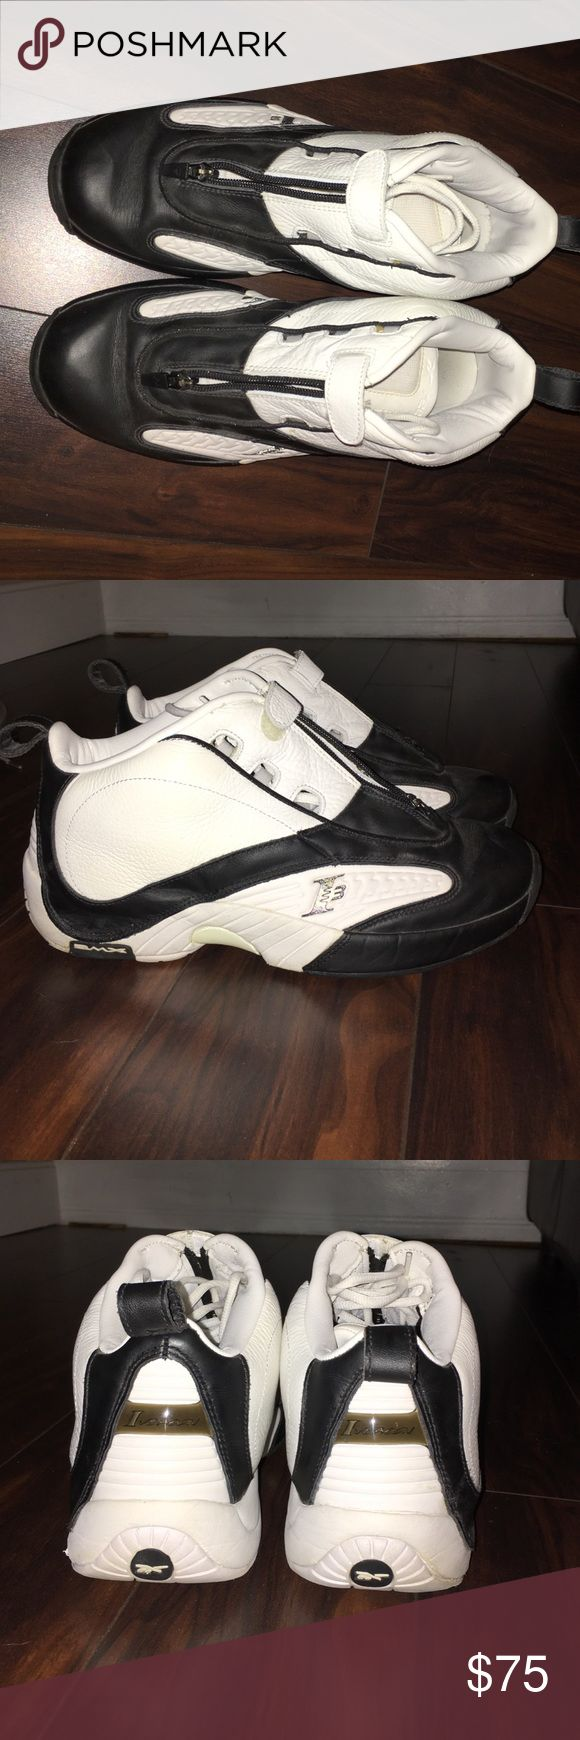 Size 10 Men's Reebok Allen Iverson Shoes Rarely worn,size 10 Allen Iverson Sneakers Reebok Shoes Sneakers